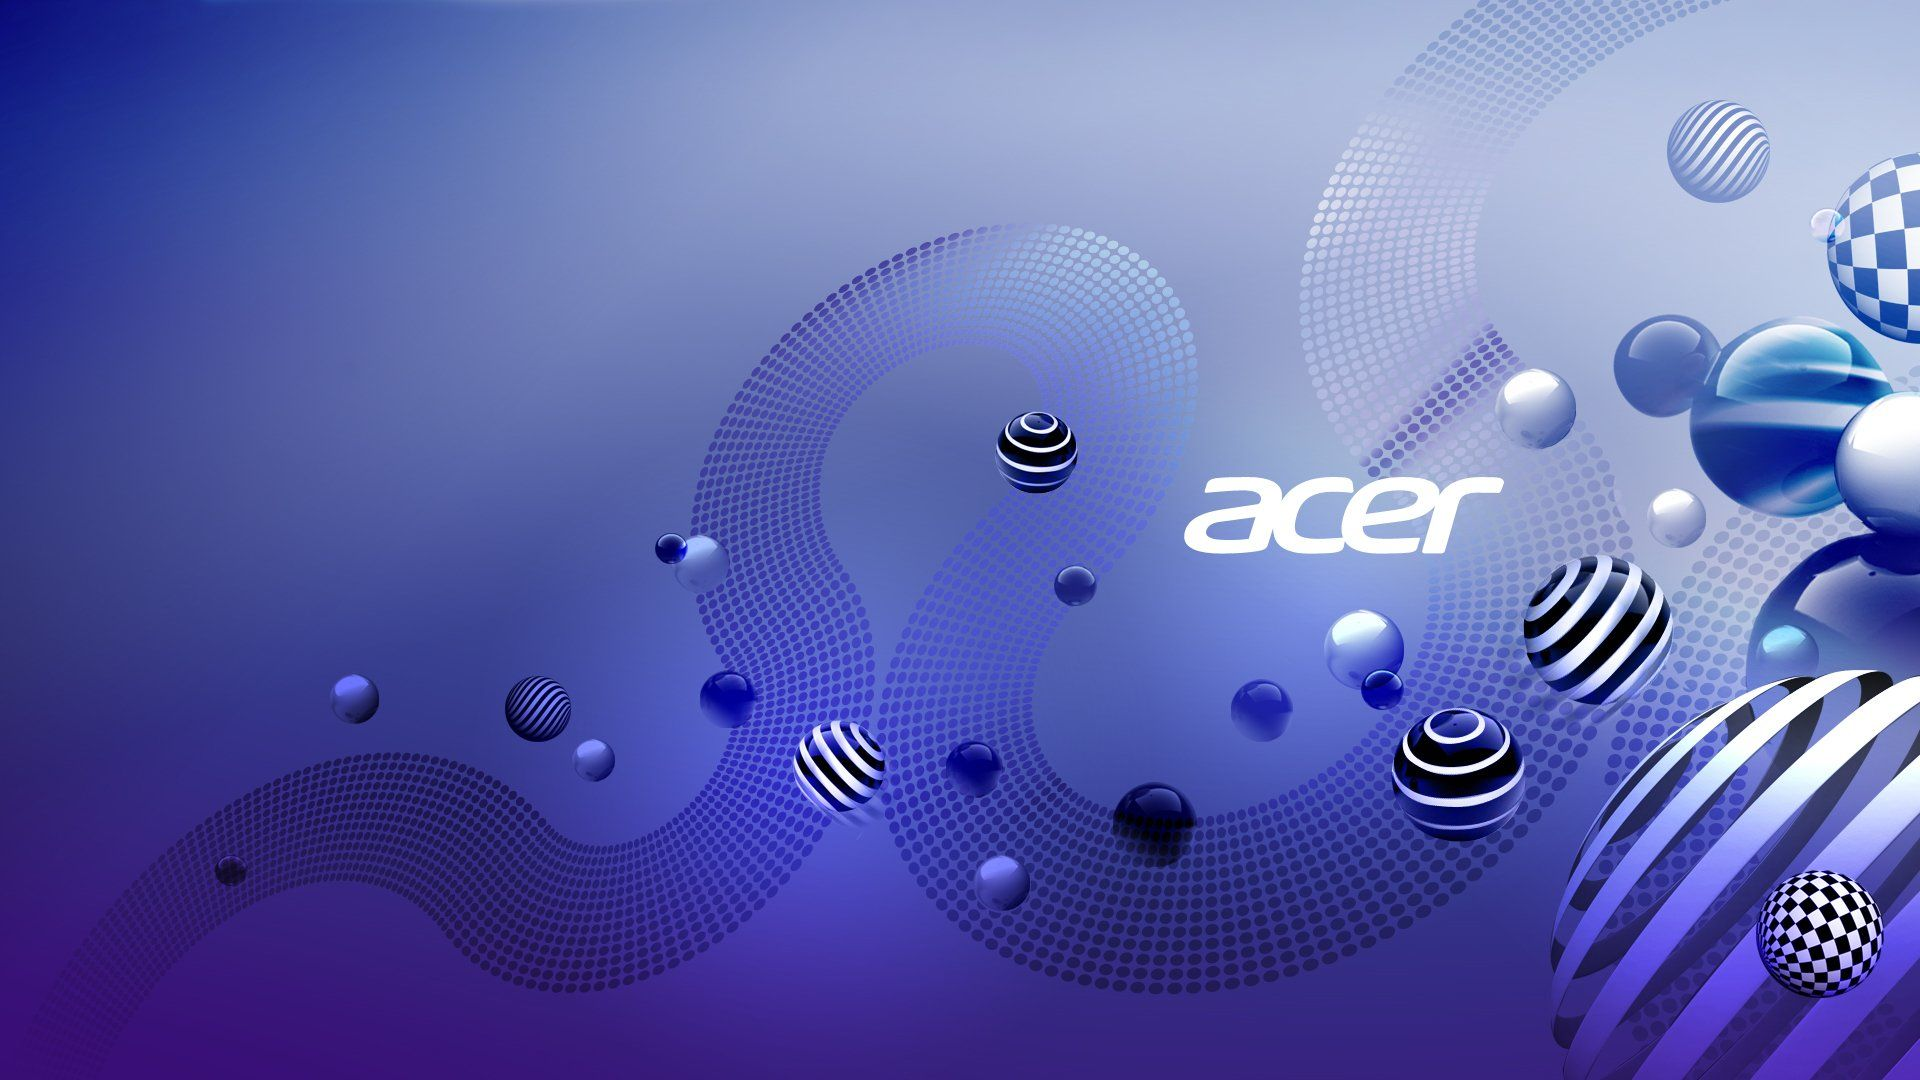 Acer Desktop Background